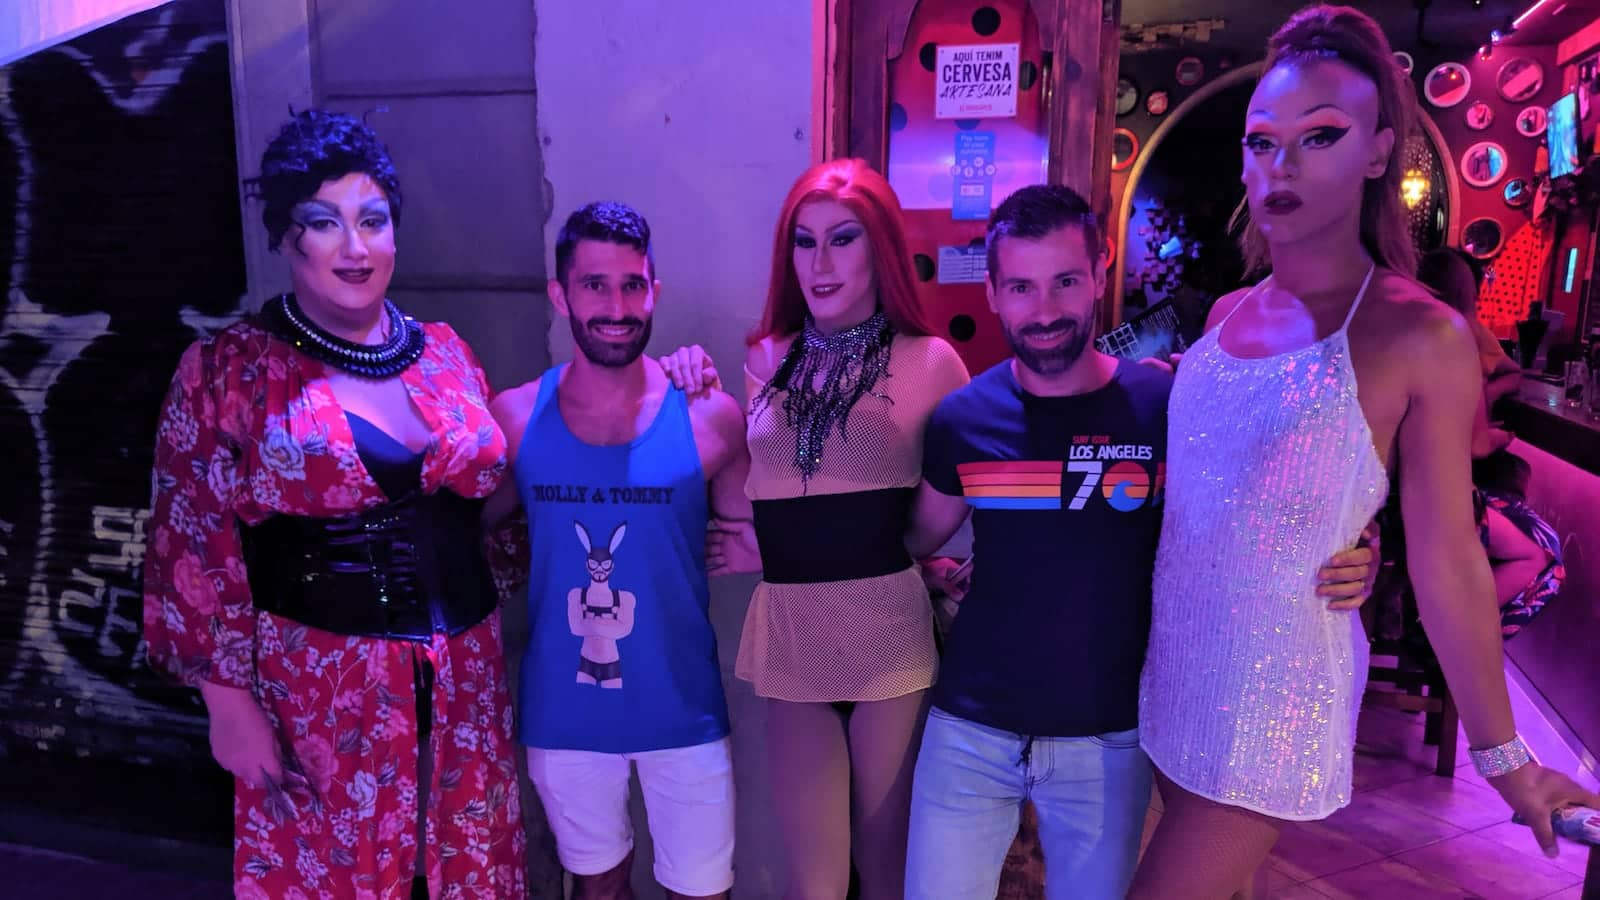 Drag queens of the GinGin gay bar in Barcelona